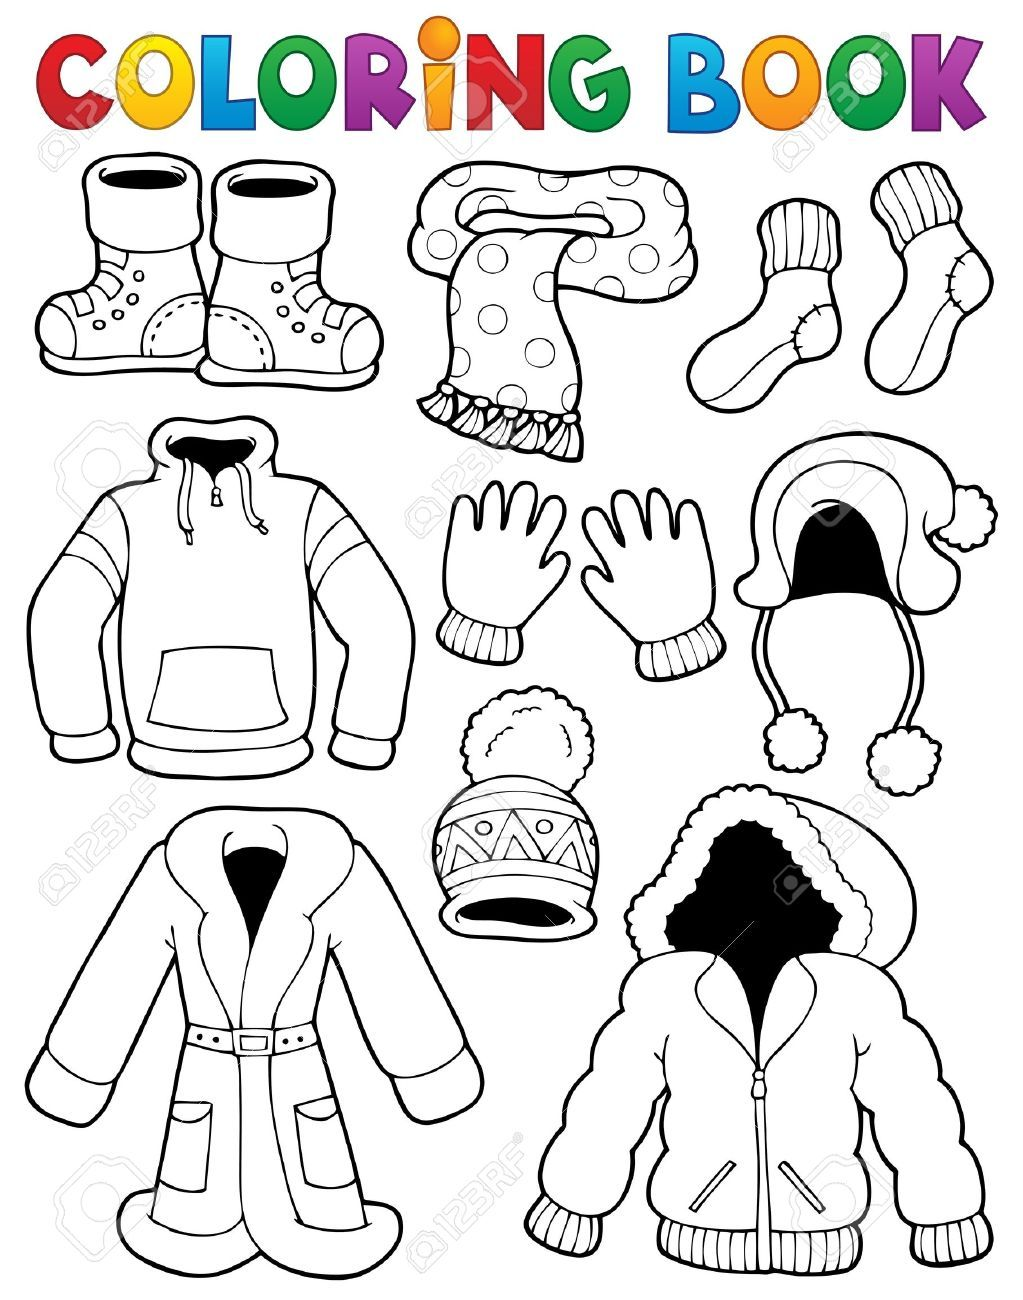 Winter Clothes Drawing at GetDrawings.com | Free for personal use ...